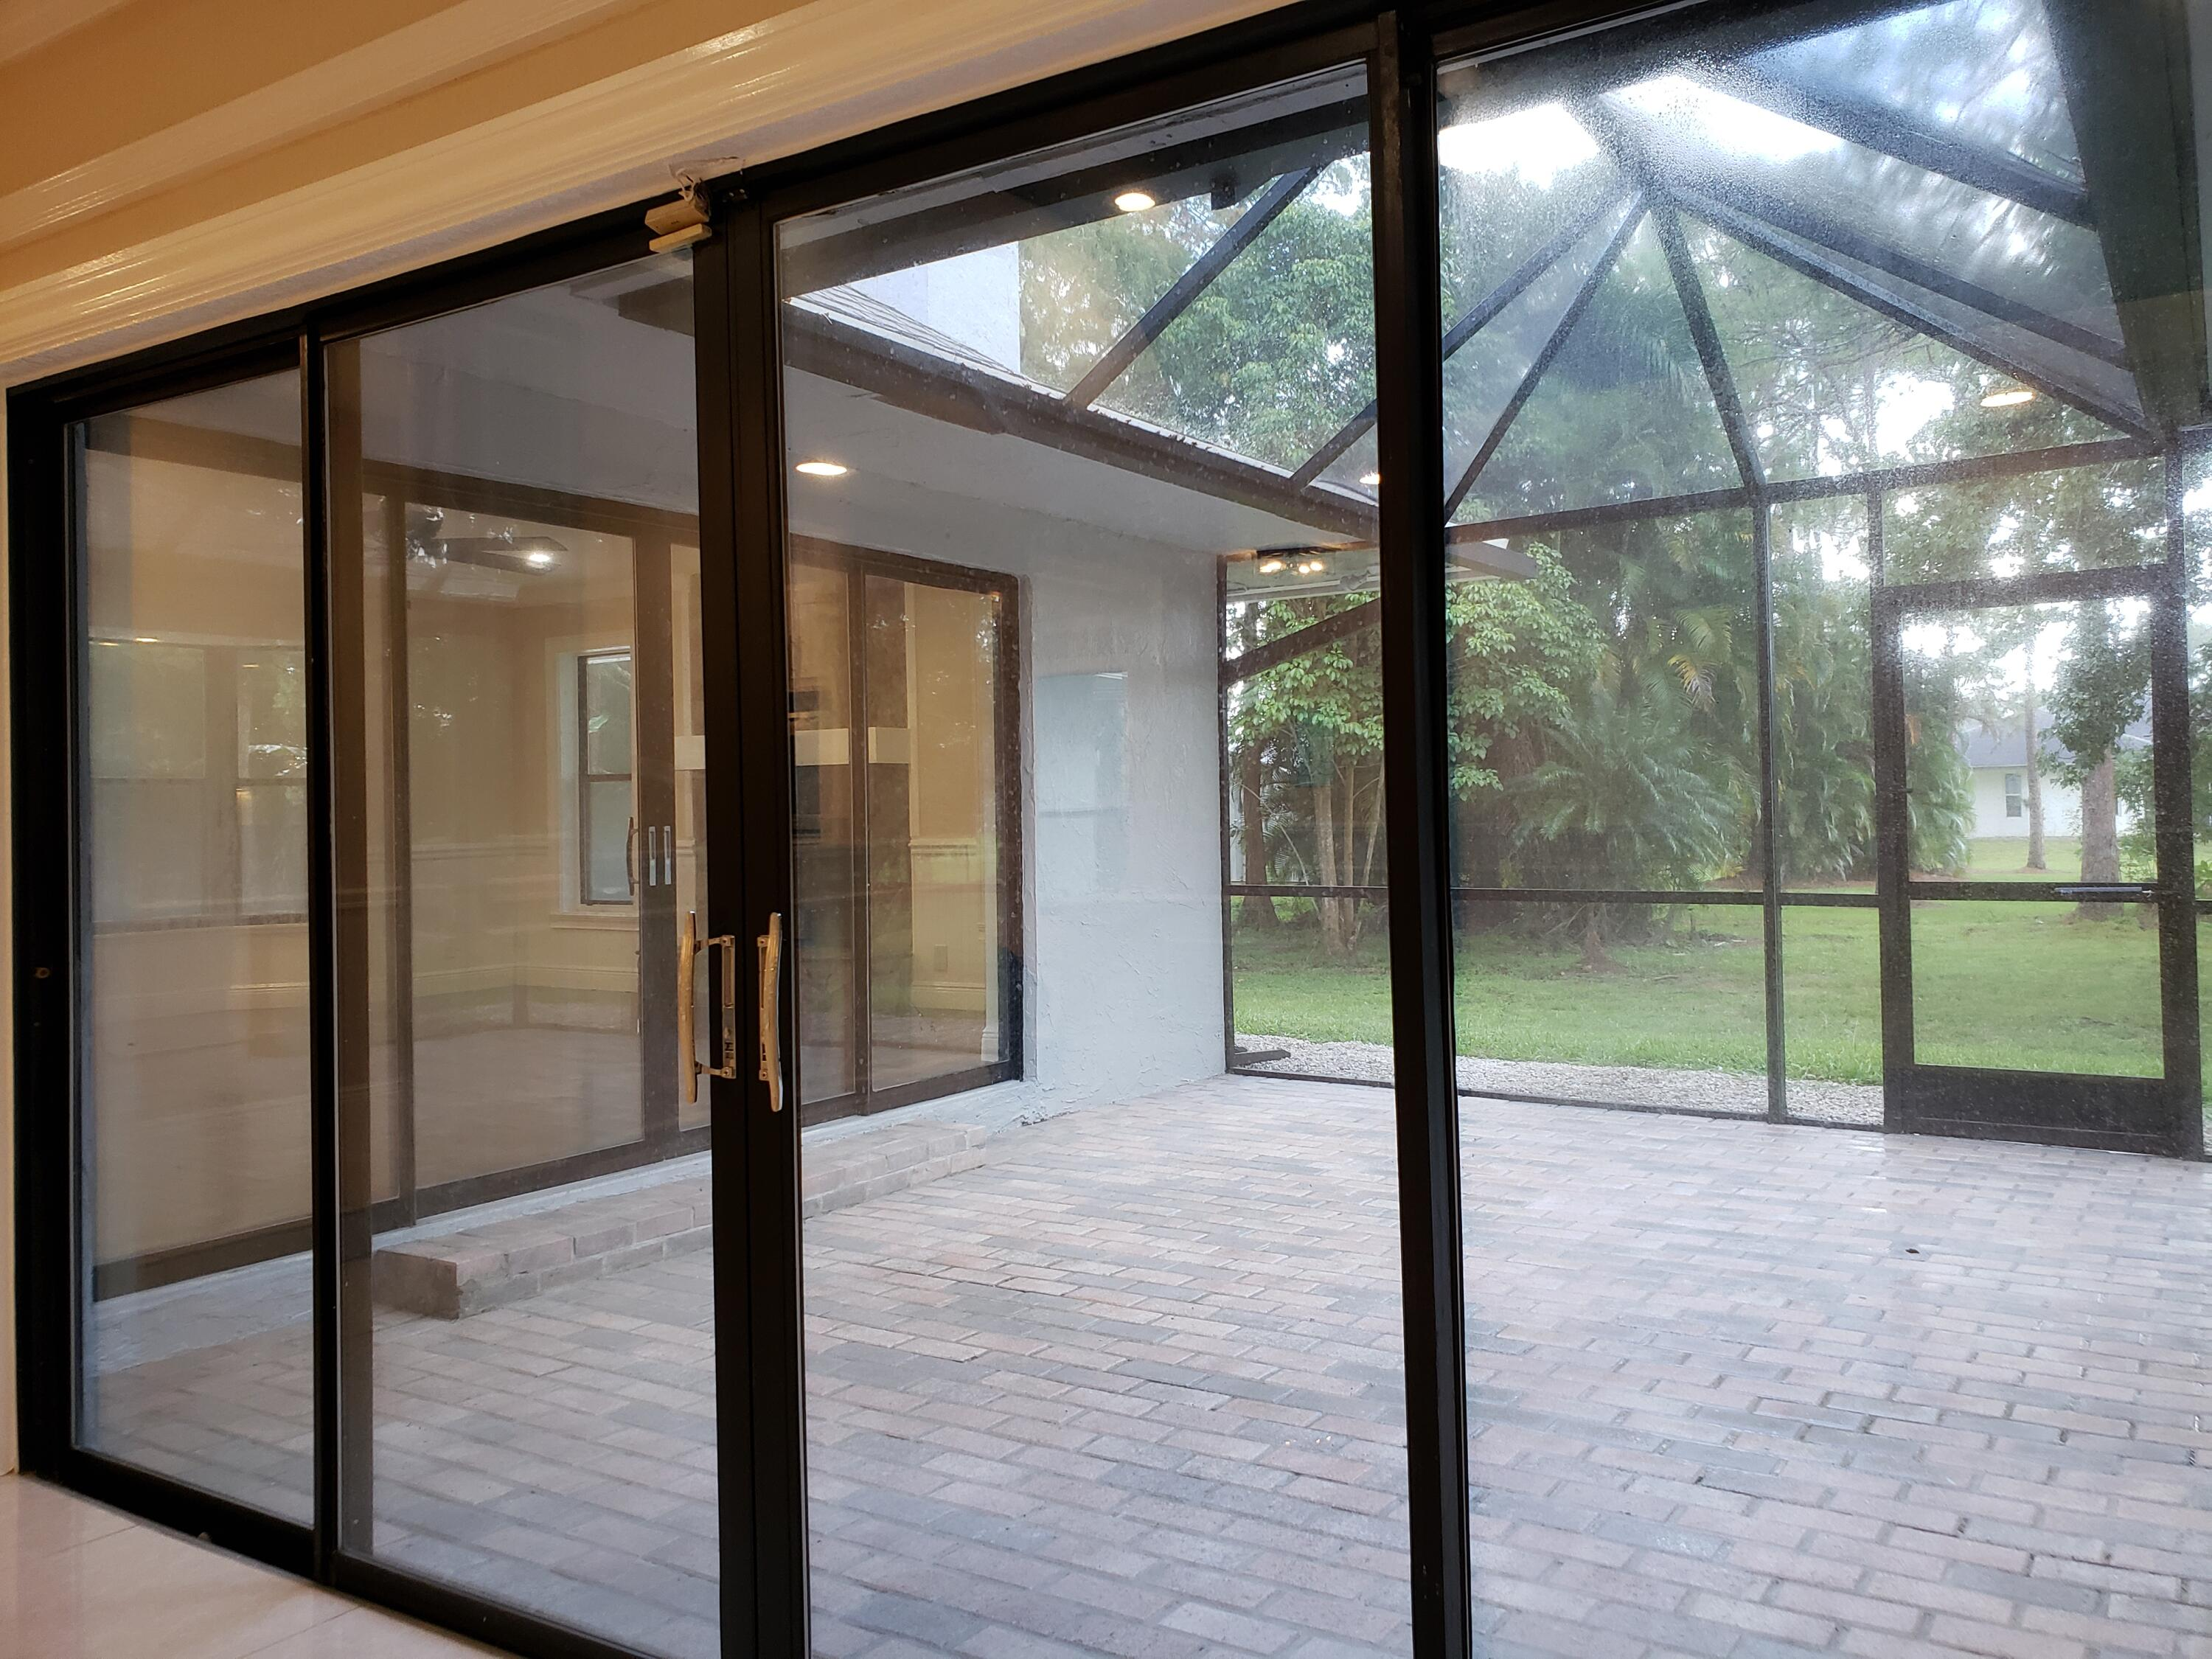 Living RM Sliders to Screened Porch